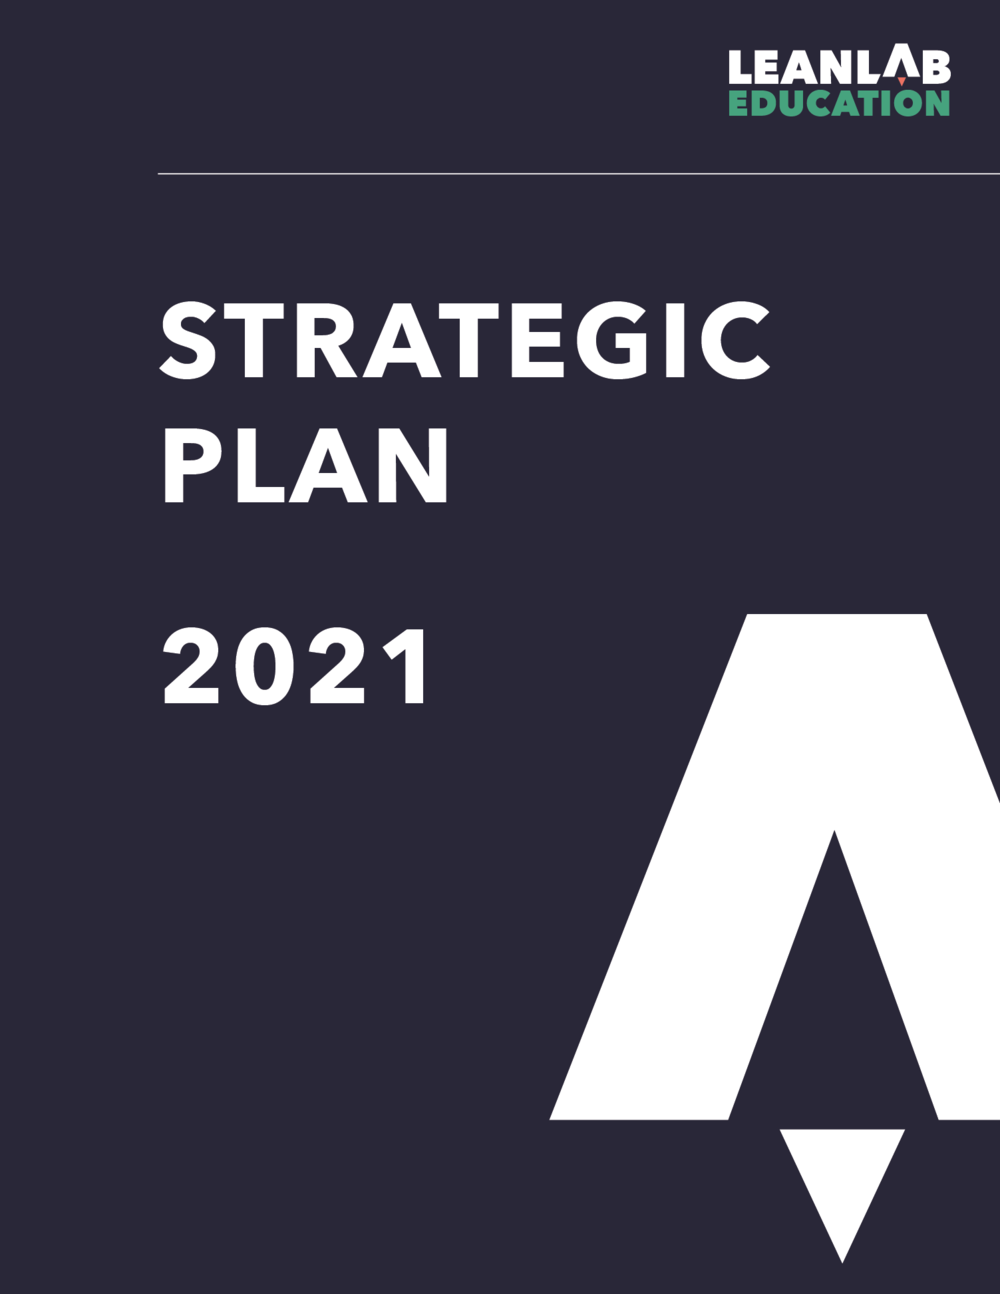 LEANLAB Strategic Plan